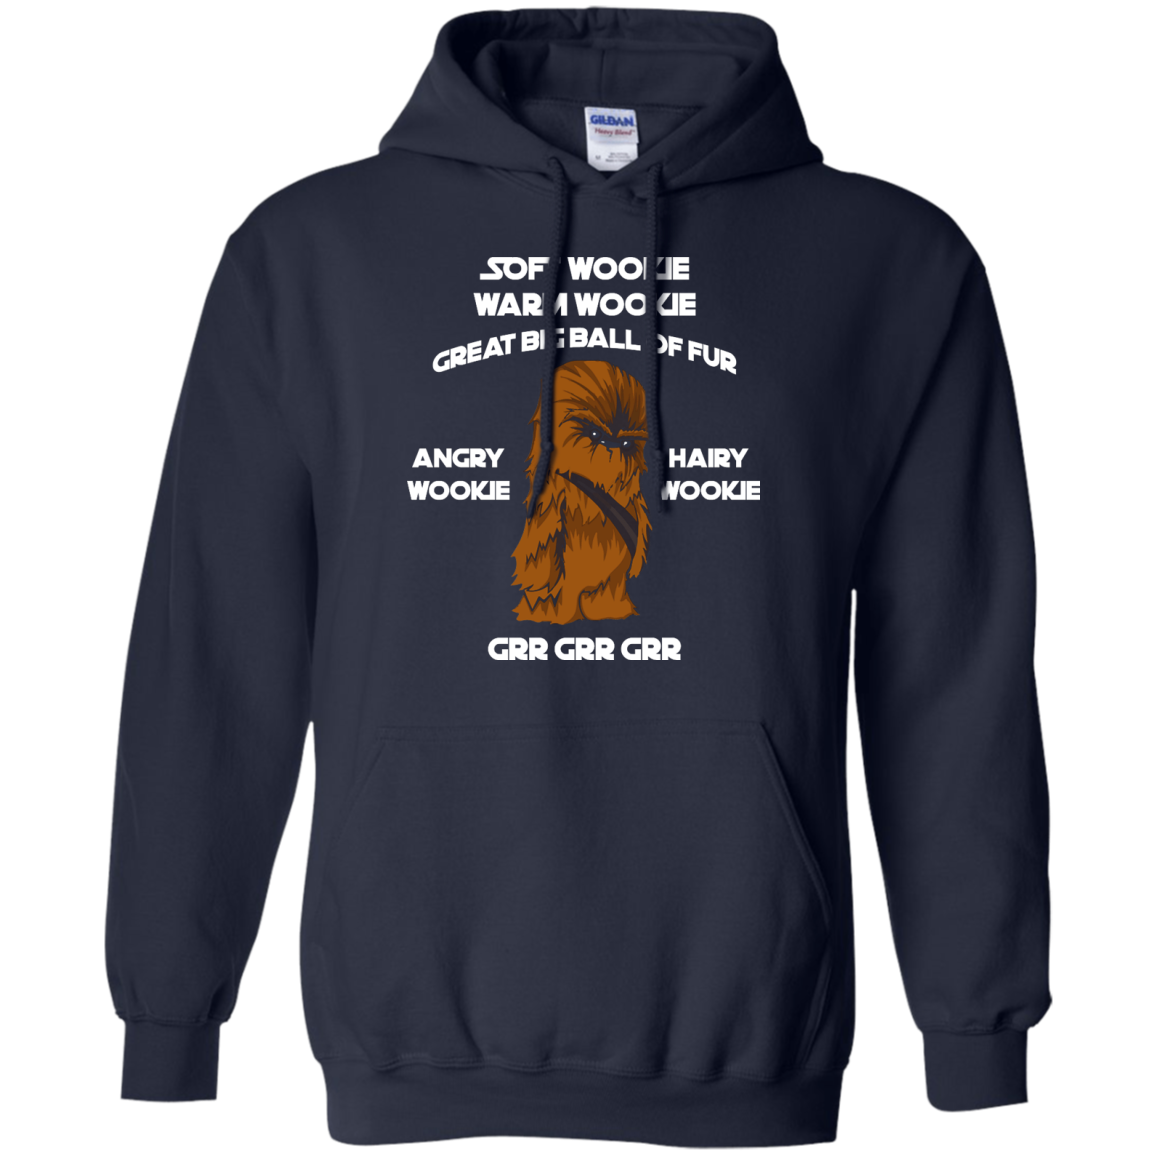 image 42px Star Wars: Soft Wookie Warm Wookie Great Big Ball Of Fur Angry Wookie Hairy Wookie T Shirts